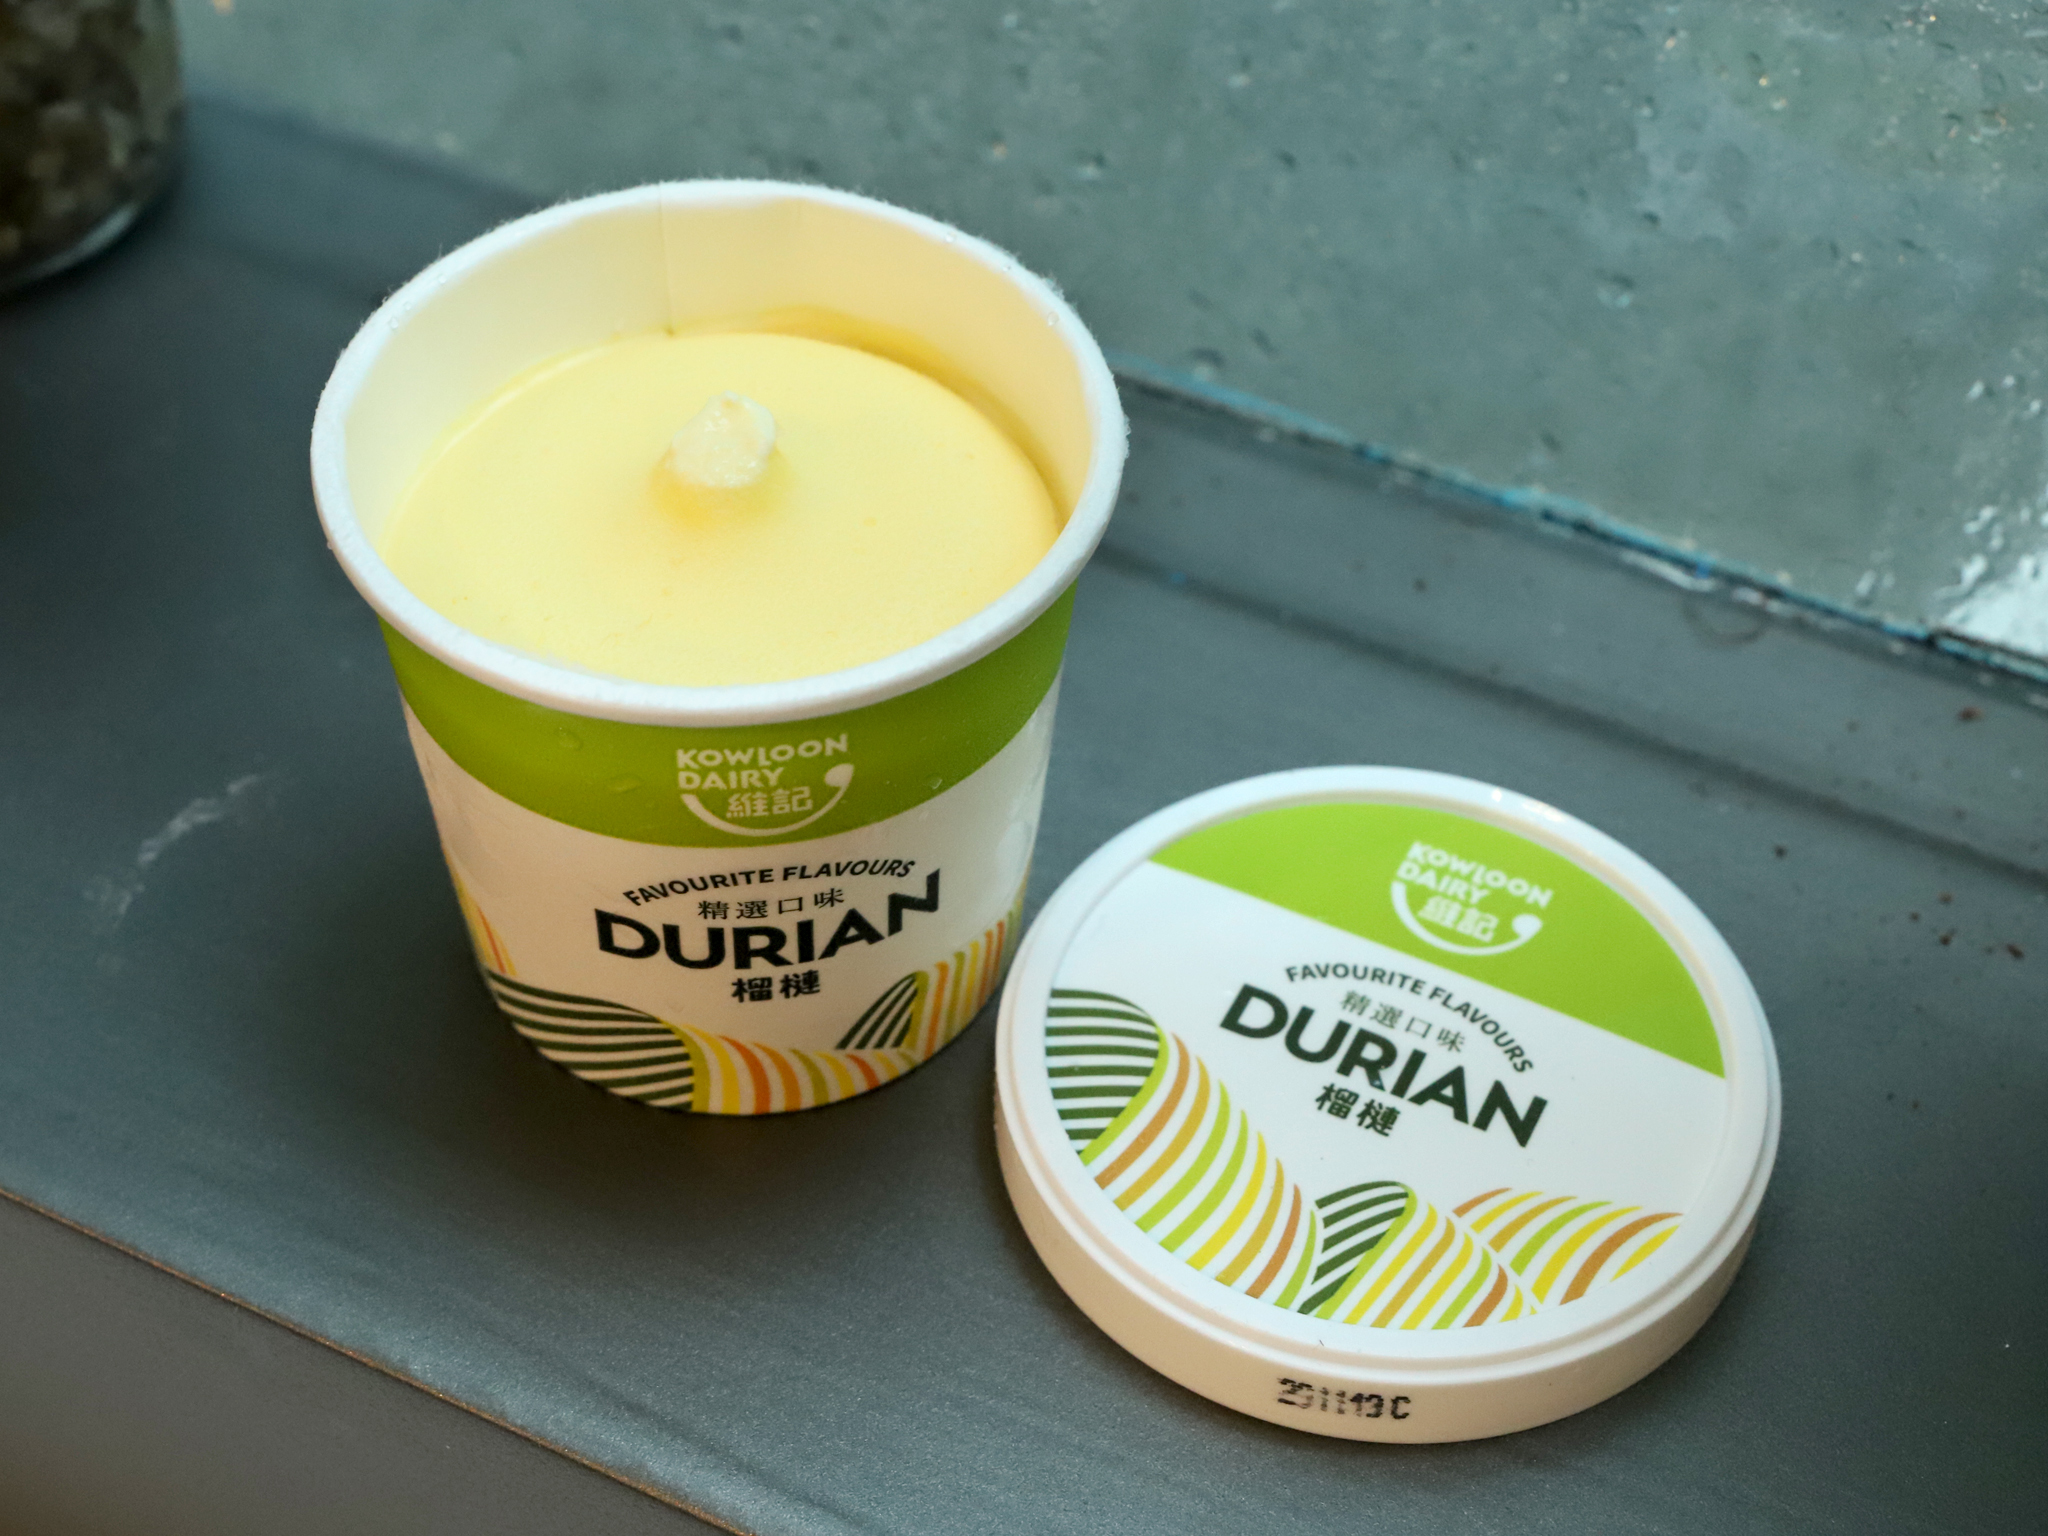 Kowloon Dairy Durian ice cream